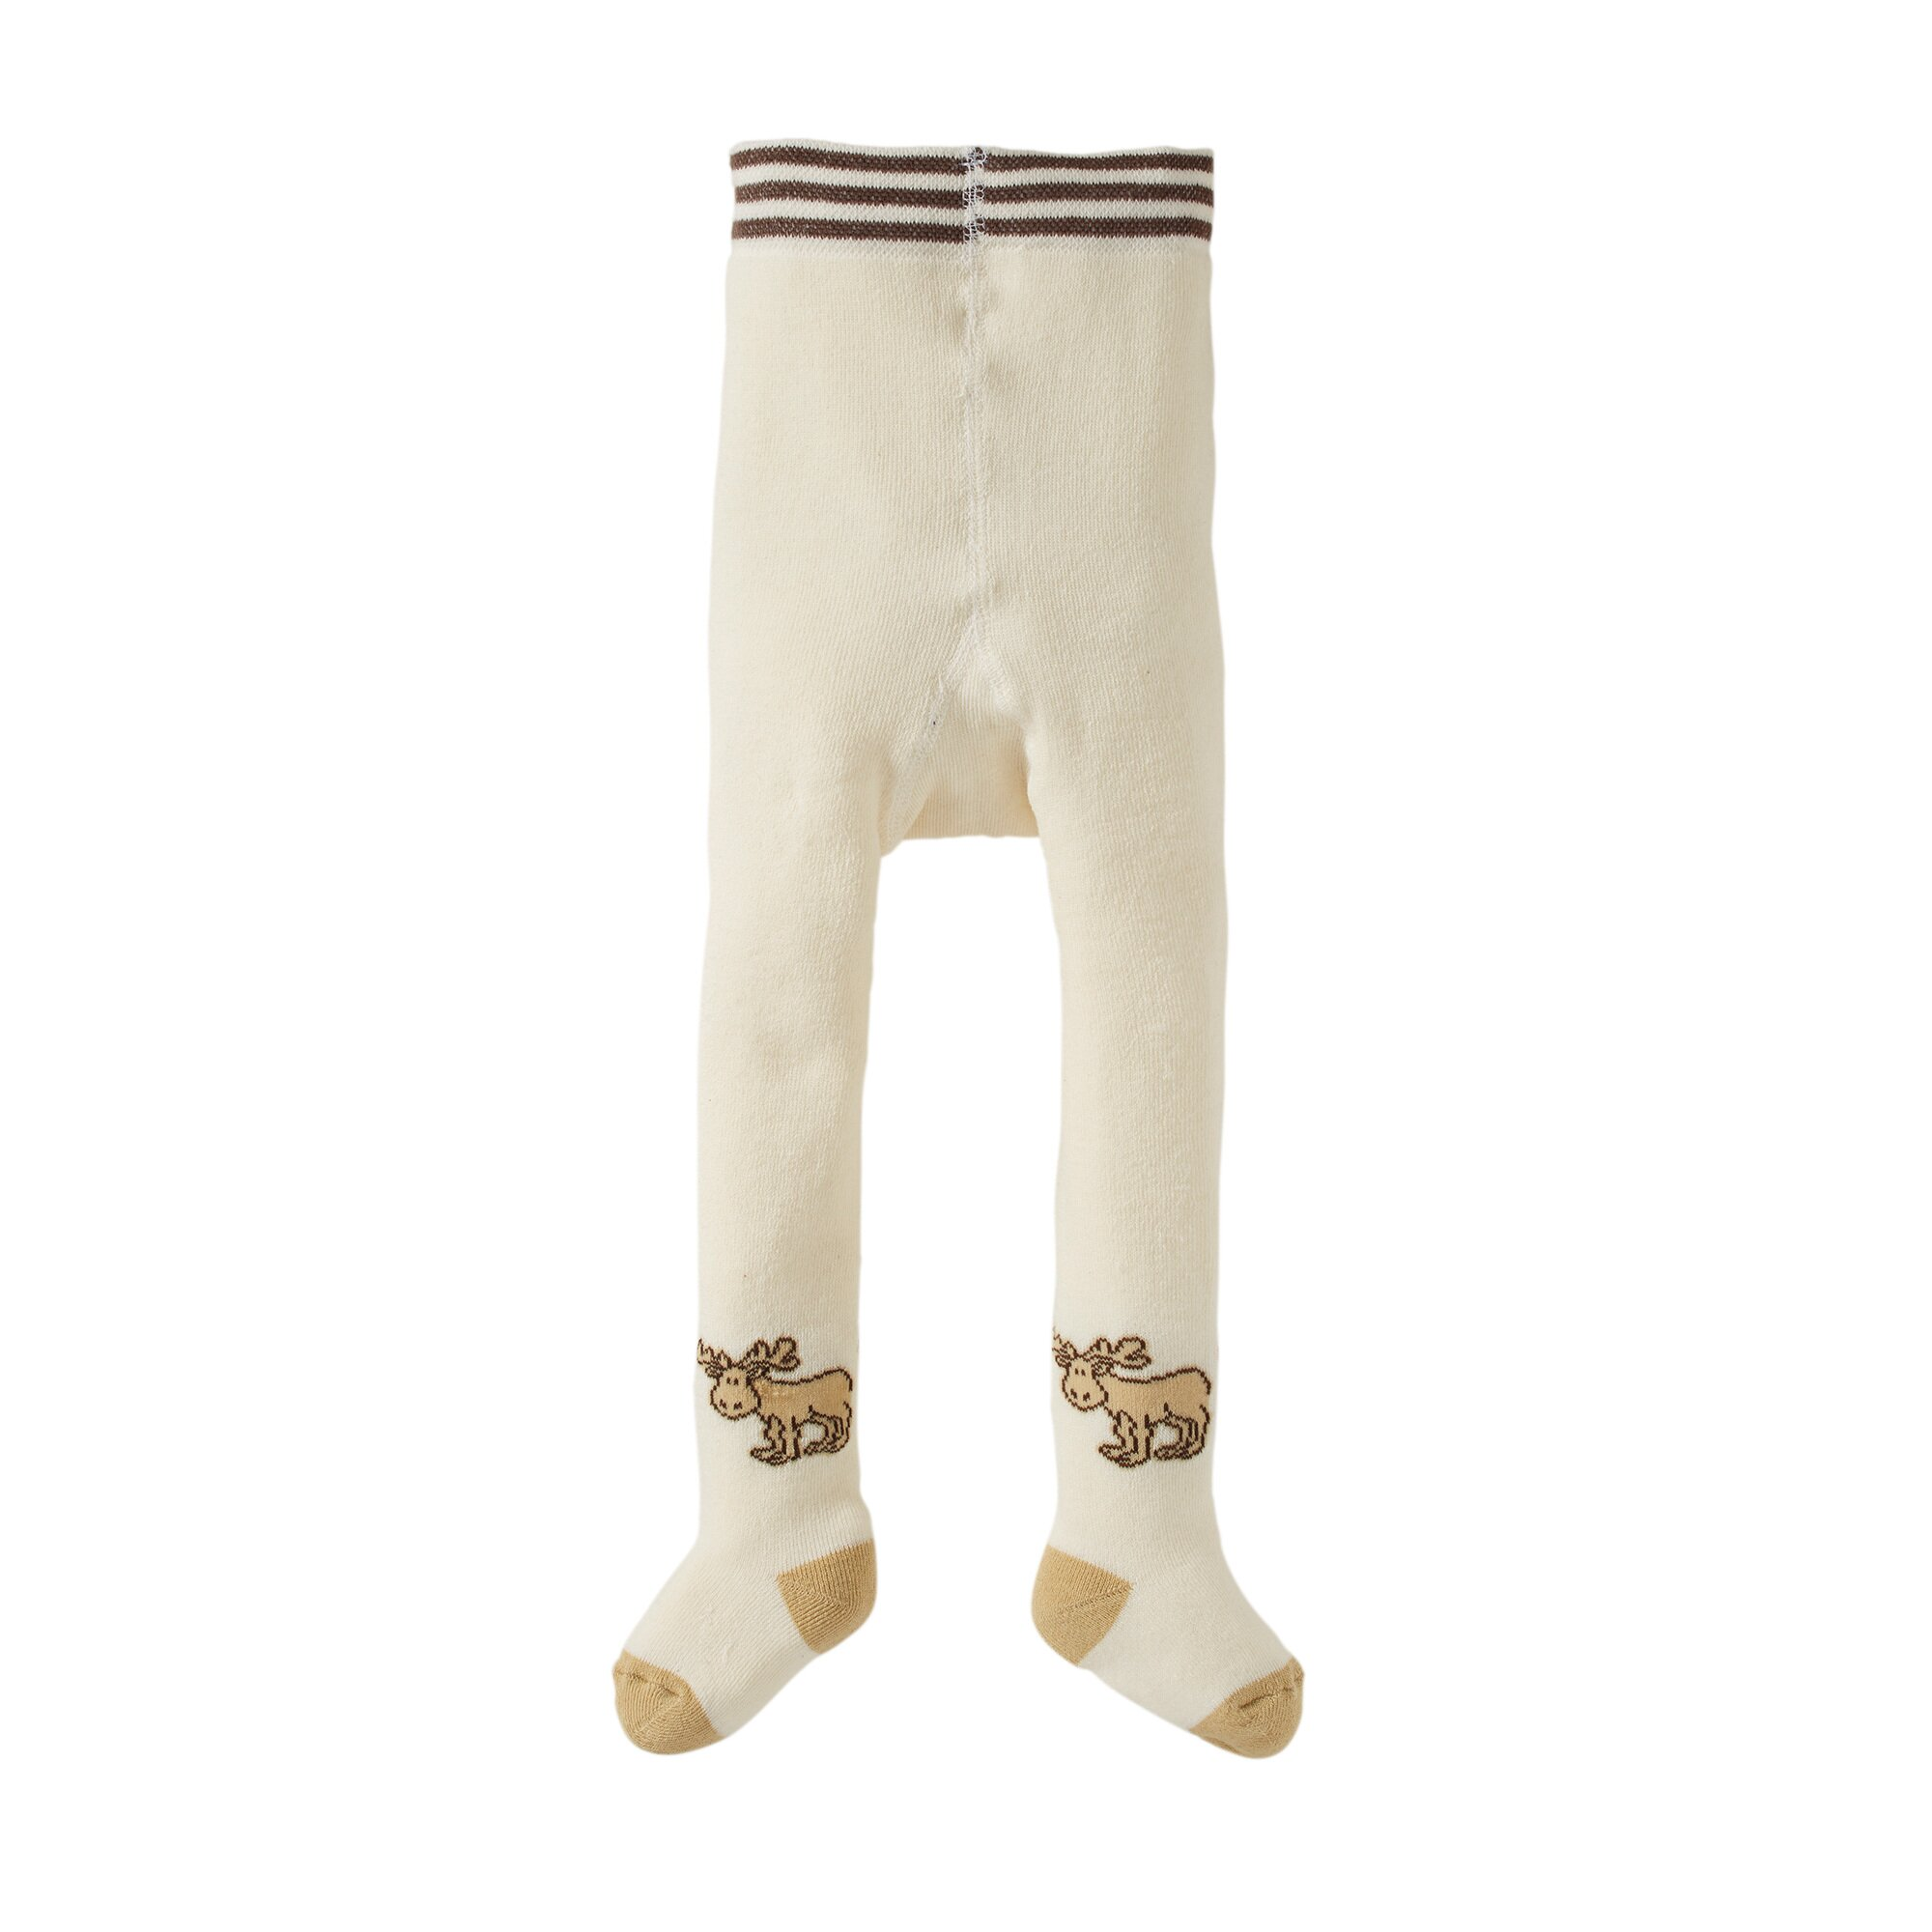 "Jacob's Thermostrumpfhose ""Elch"" beige 50//62//74//98"